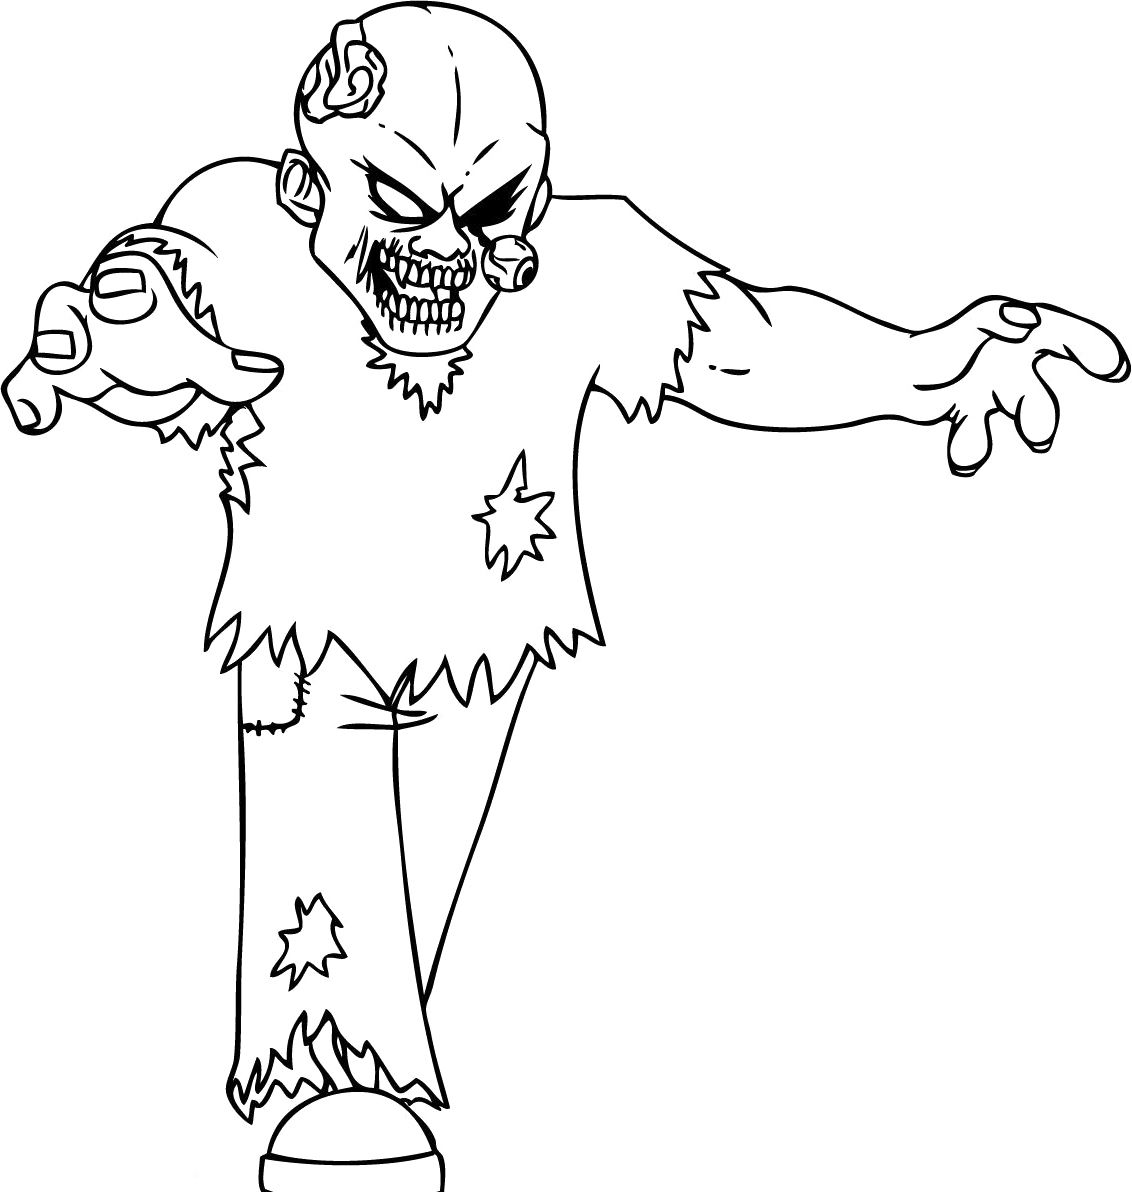 disney channel zombies coloring pages disney zombies coloring pages disney zombies coloring pages channel